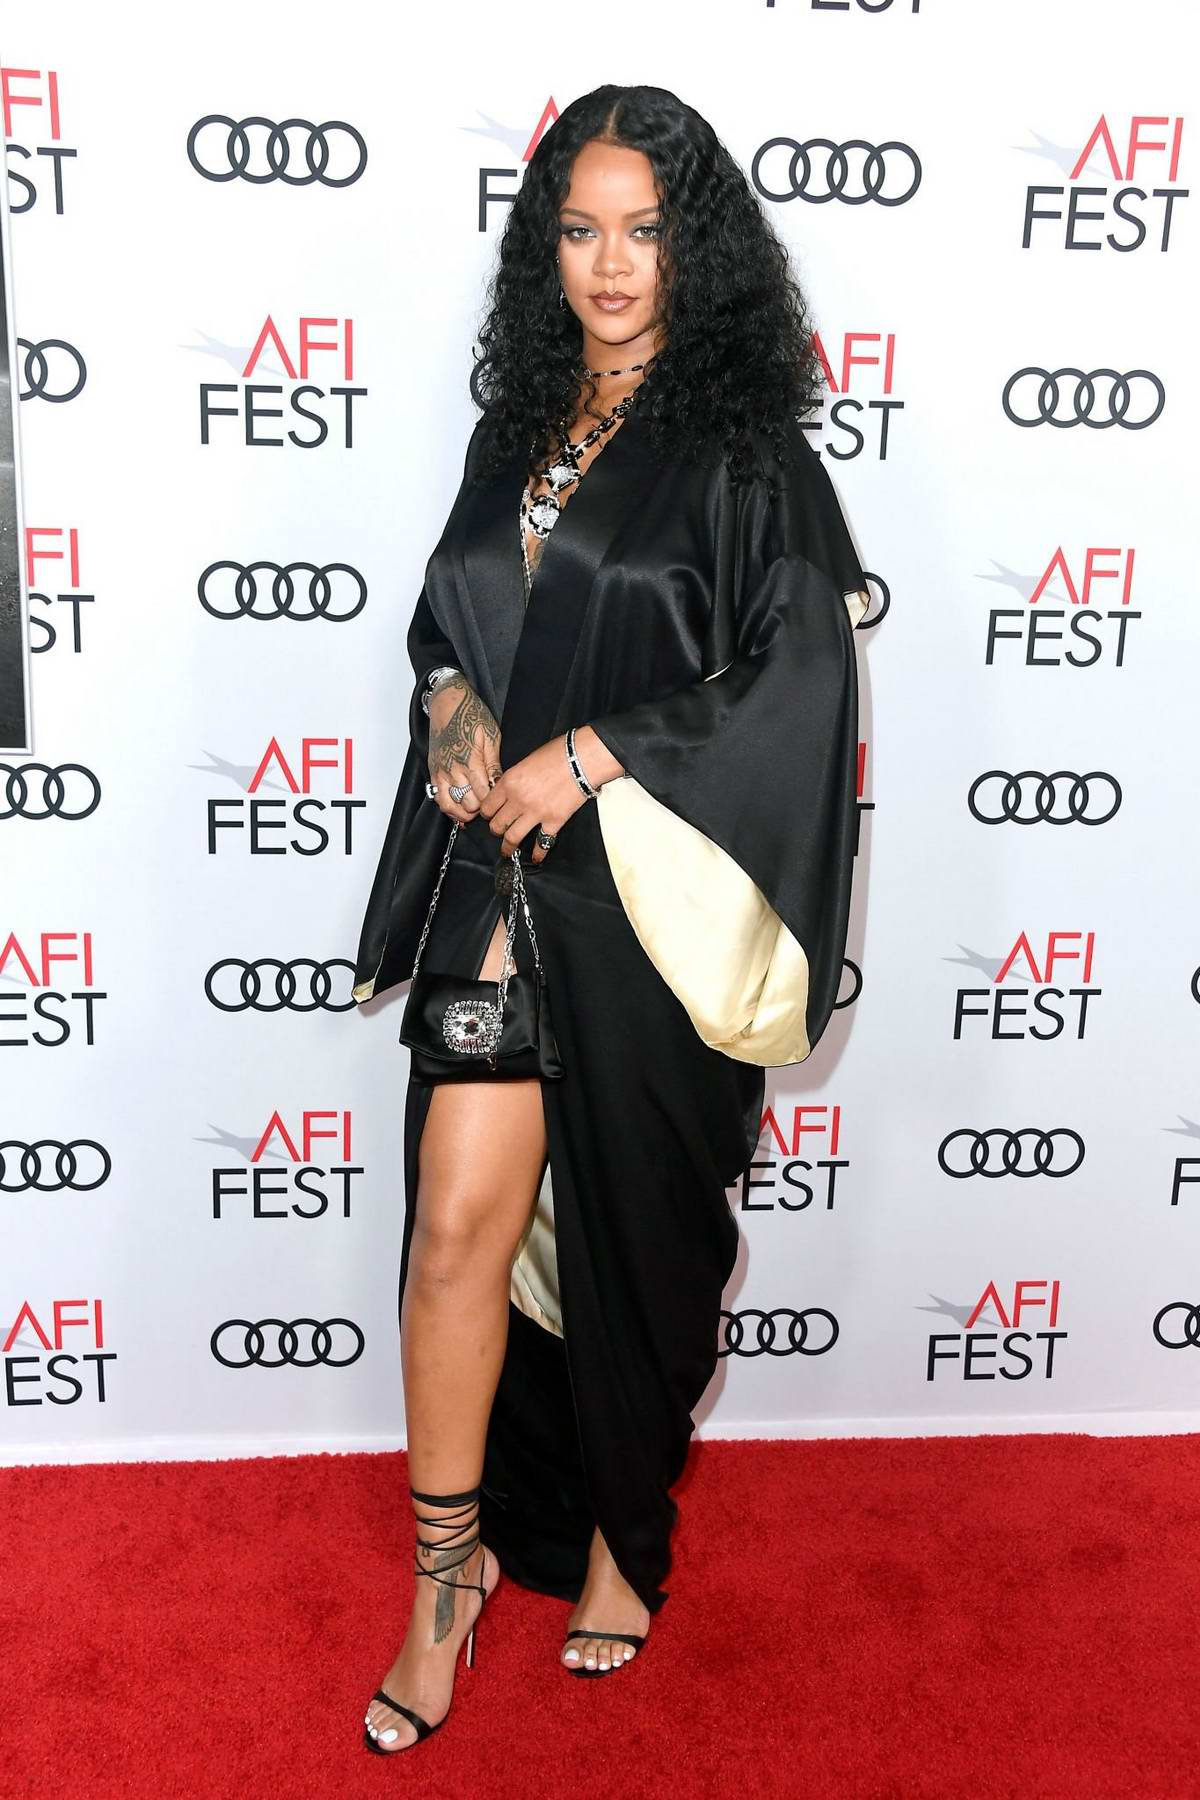 Rihanna attends 'Queen & Slim' Premiere at AFI Fest in Hollywood, California